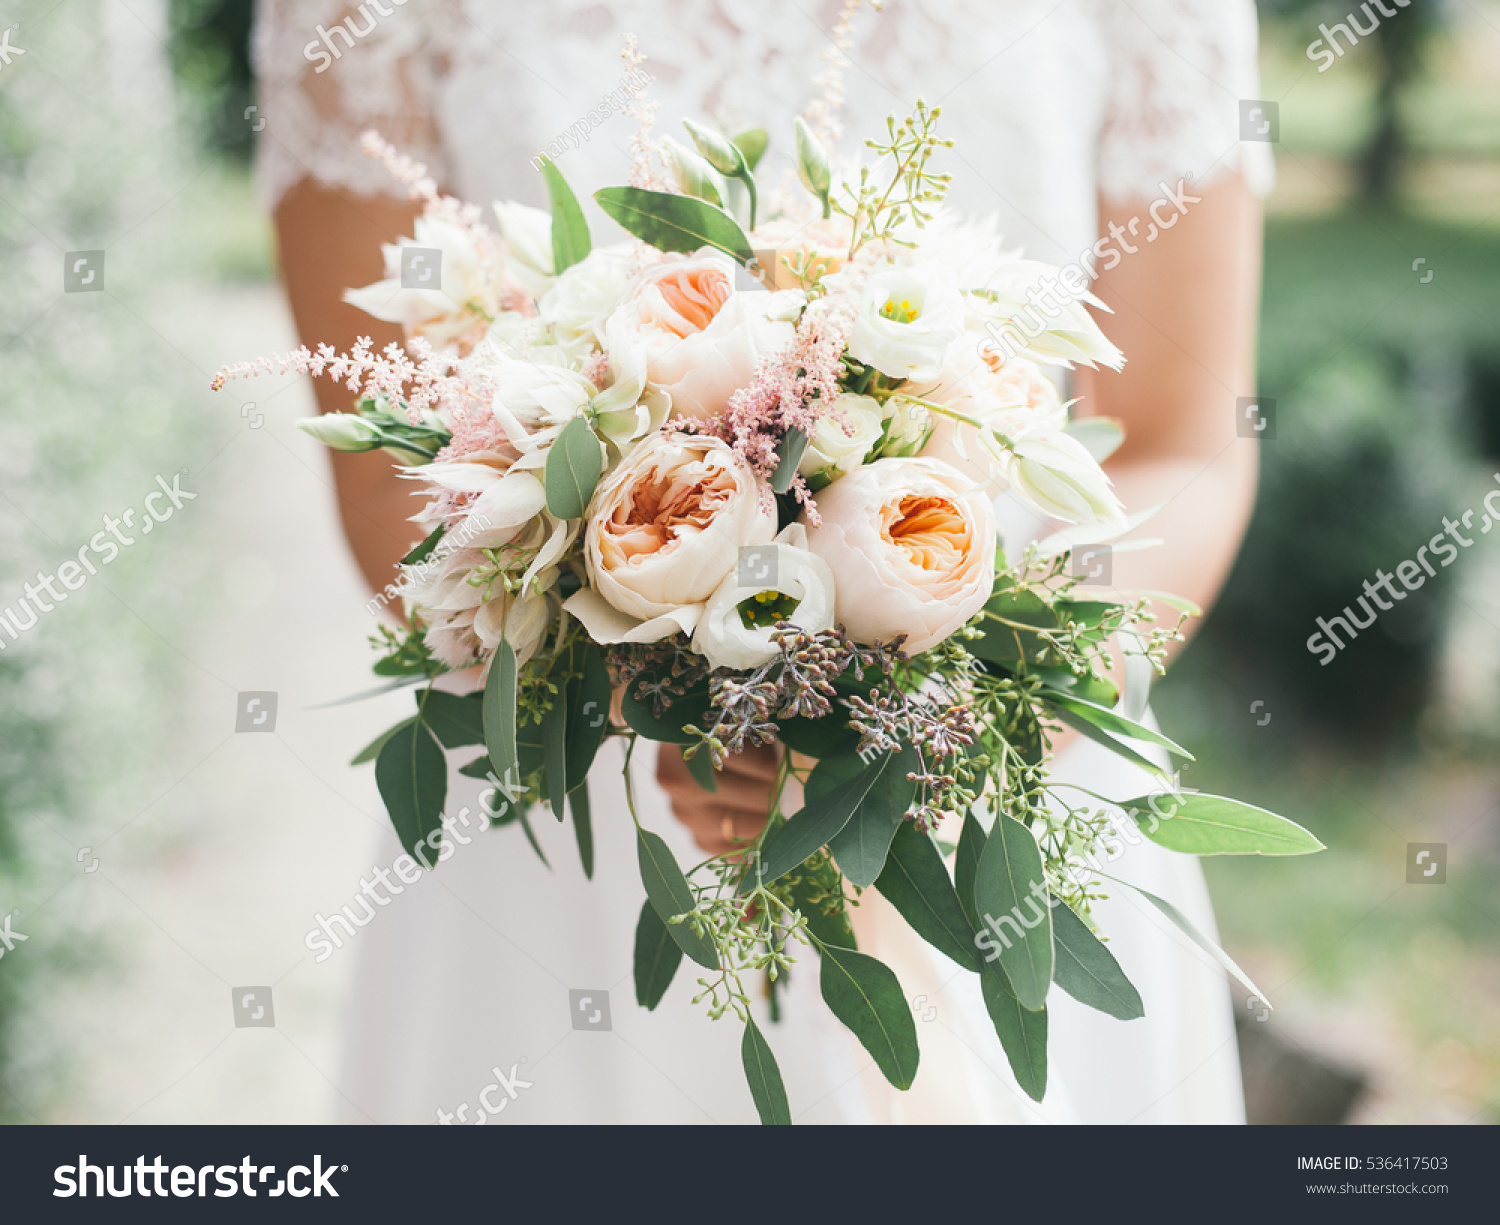 wedding bouquet in bride's hands, david austin